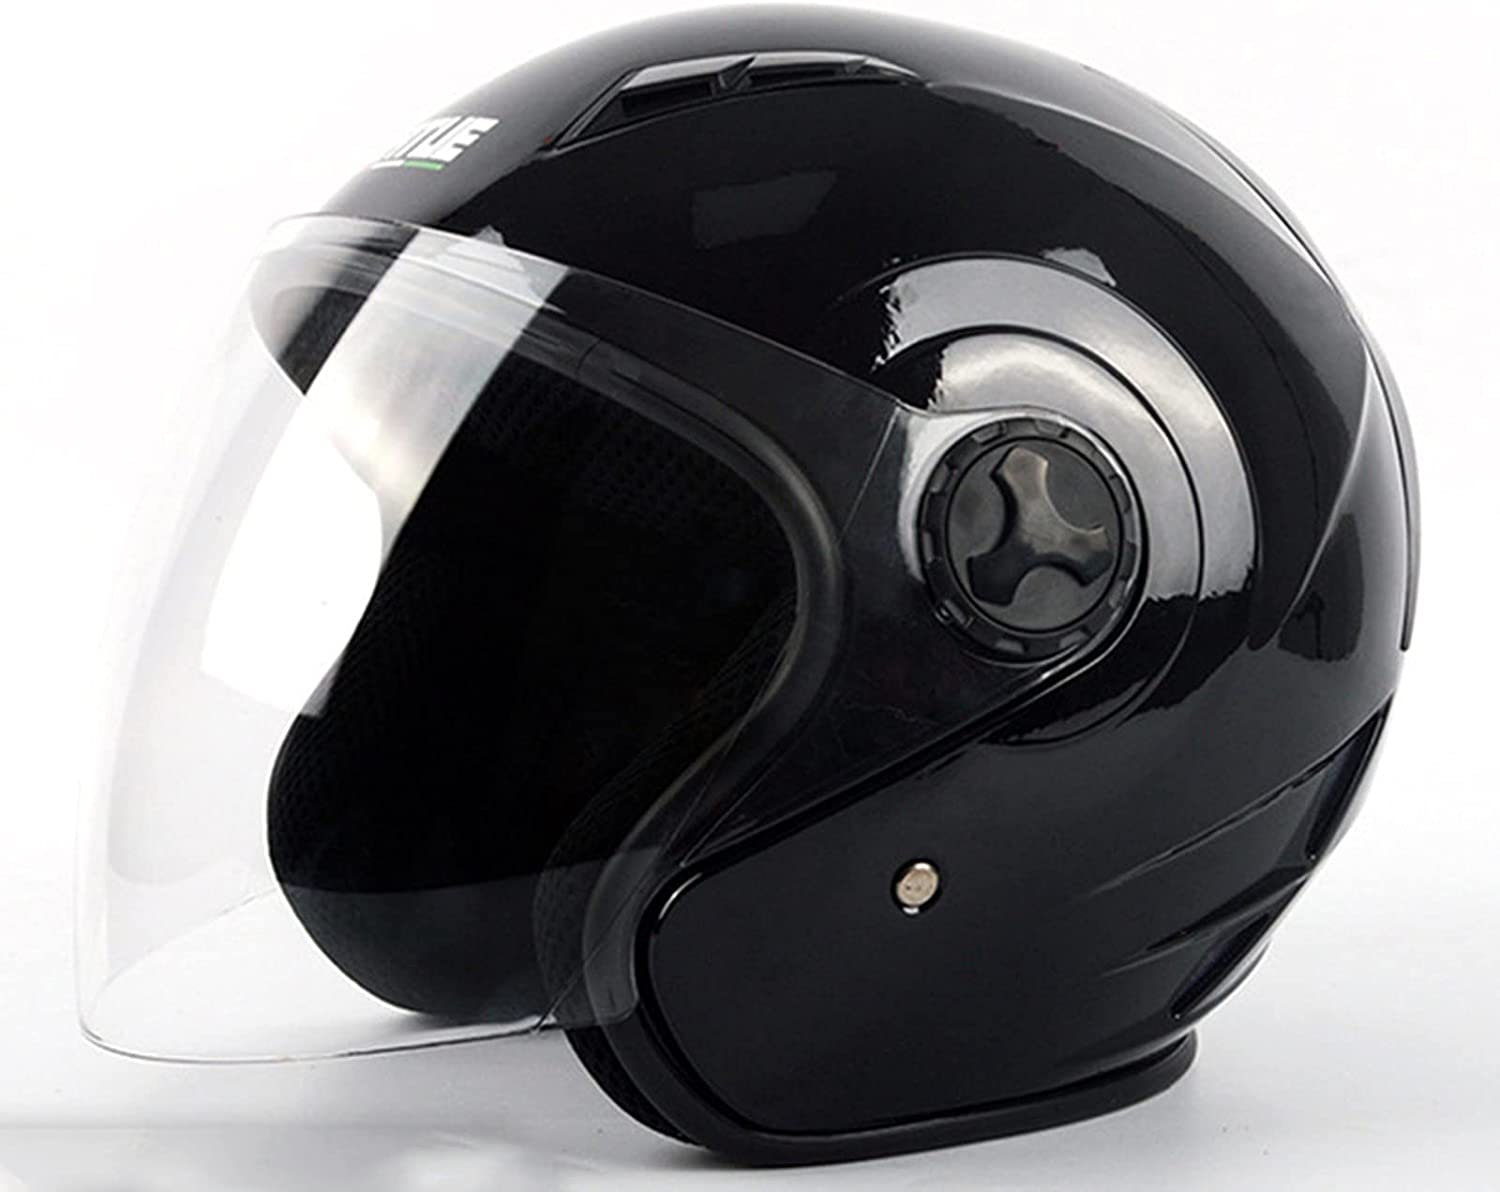 Open Face Helmet Motorcycle with Helme Visor Manufacturer regenerated product Recommended Half Sun